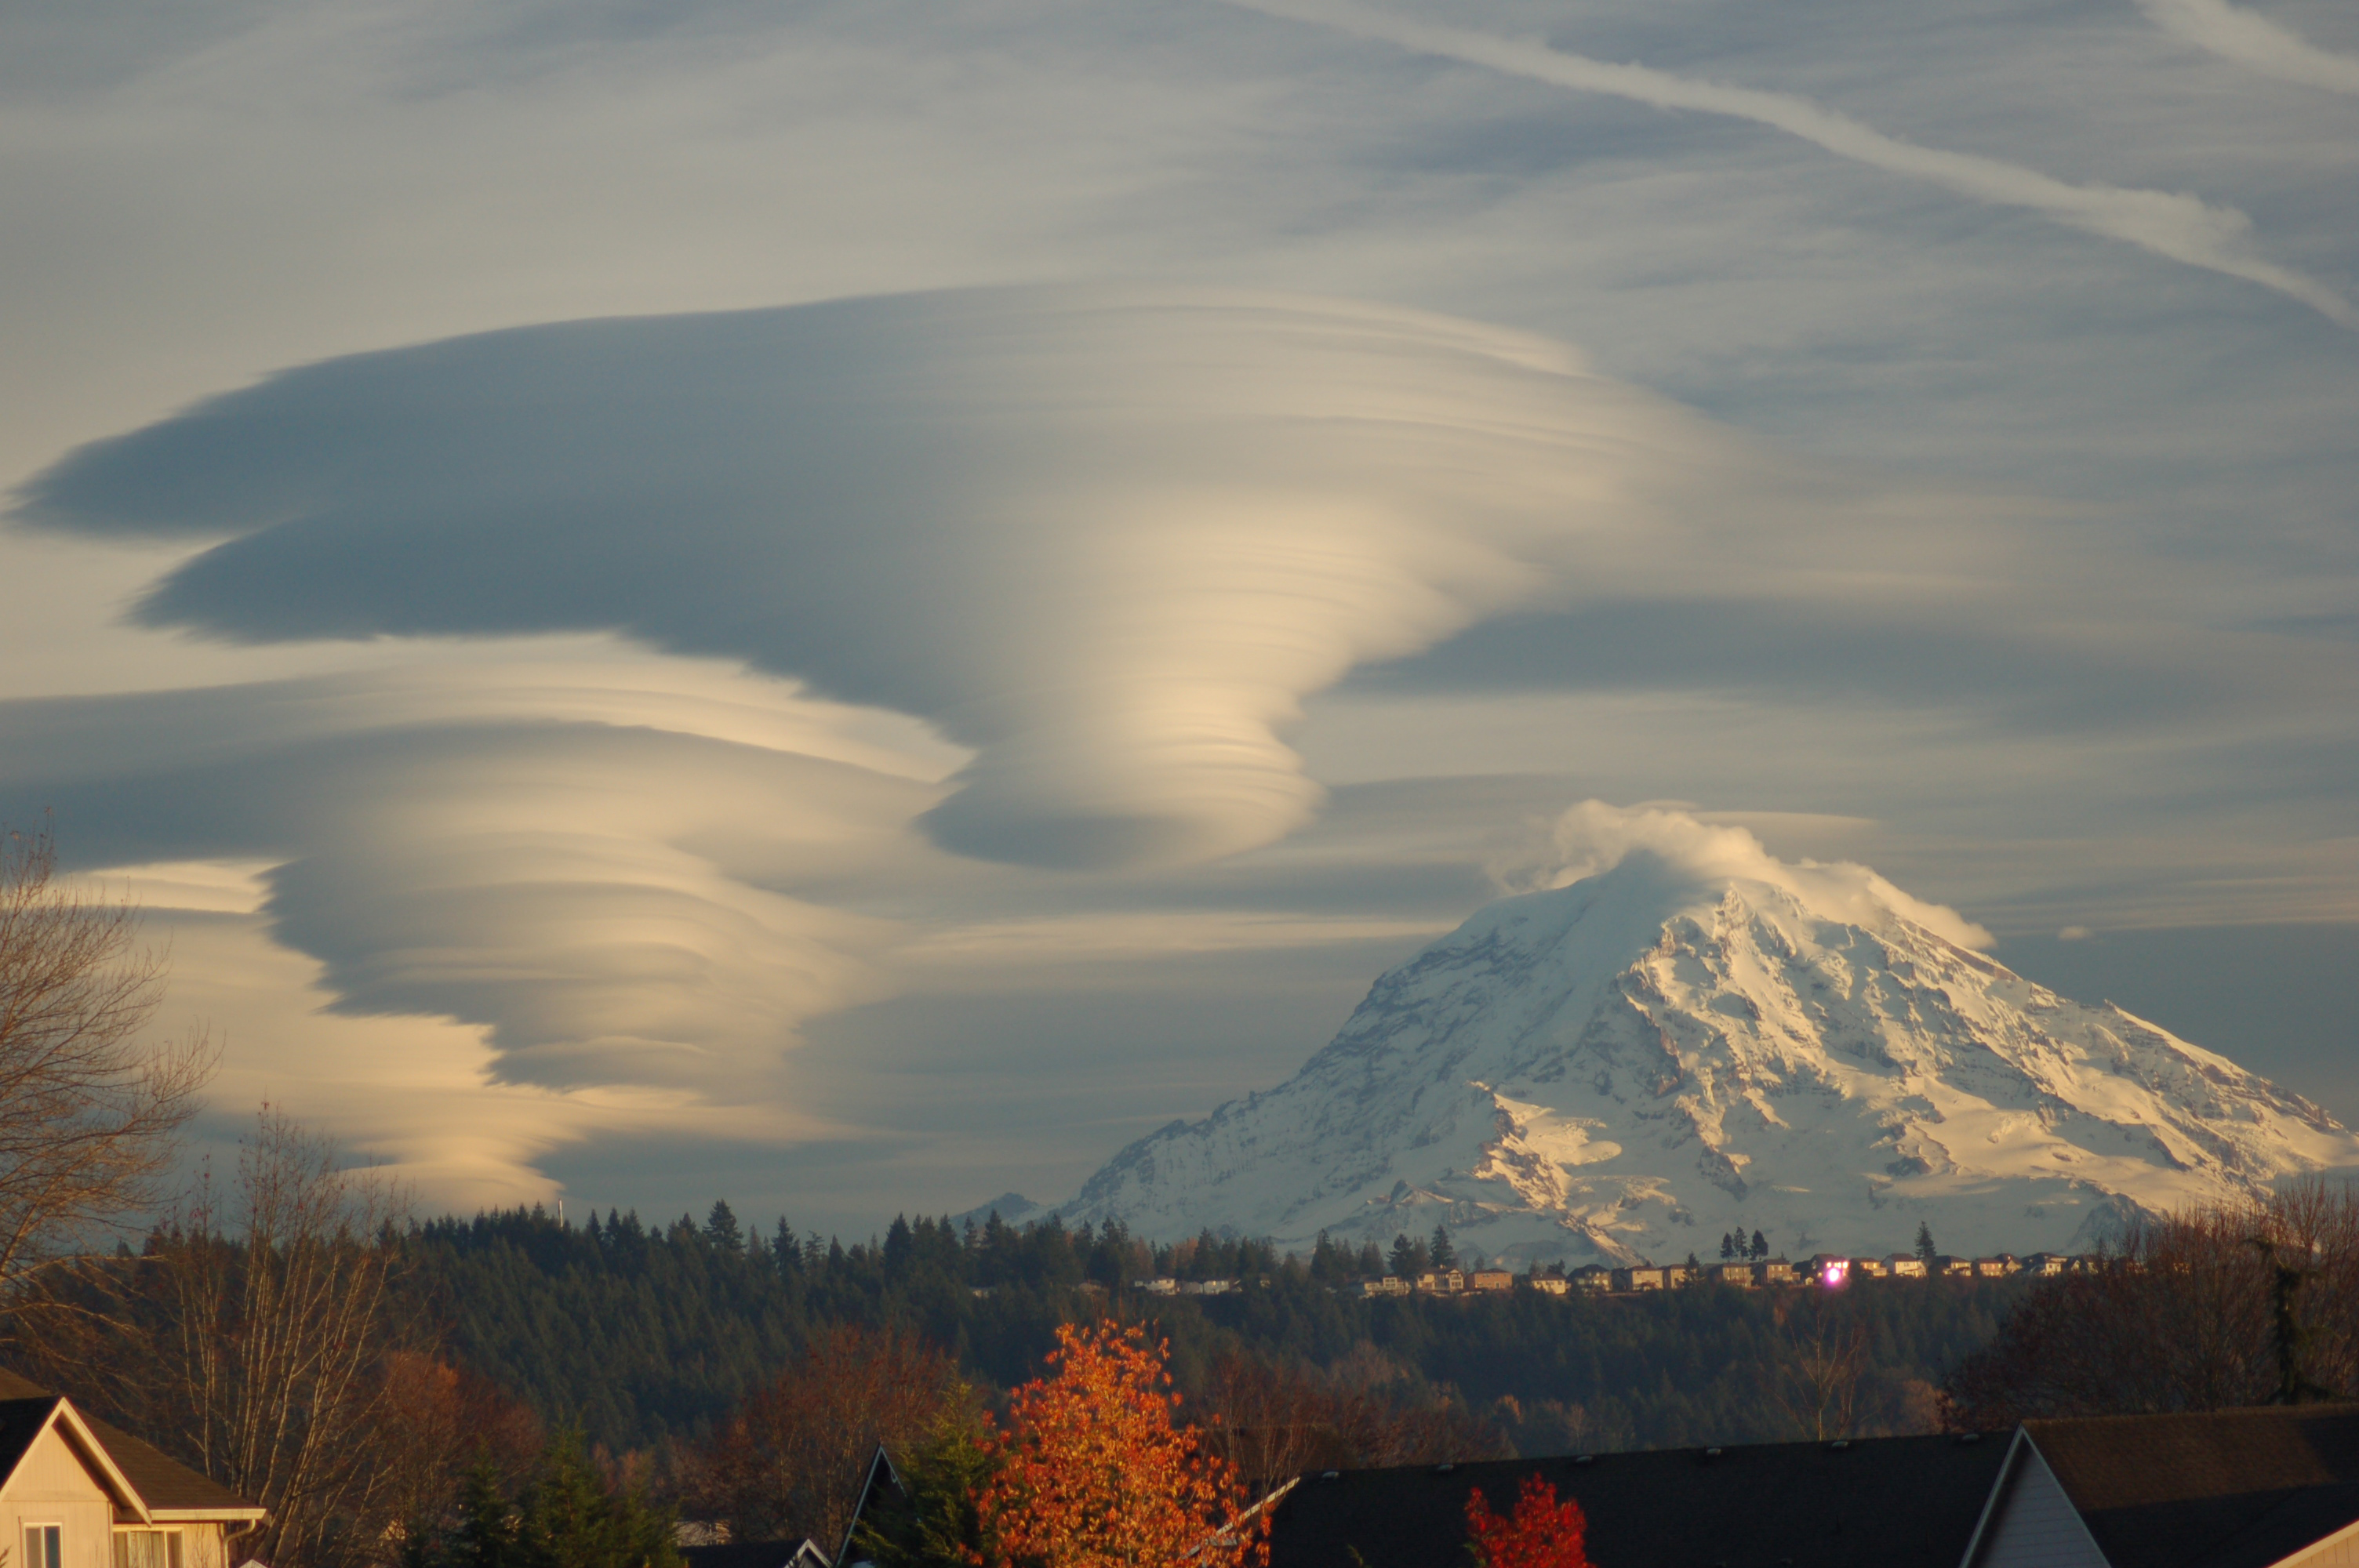 http://katu.s3.amazonaws.com/3282/2008/12/15/rainier_photo_tim_thompson.jpg